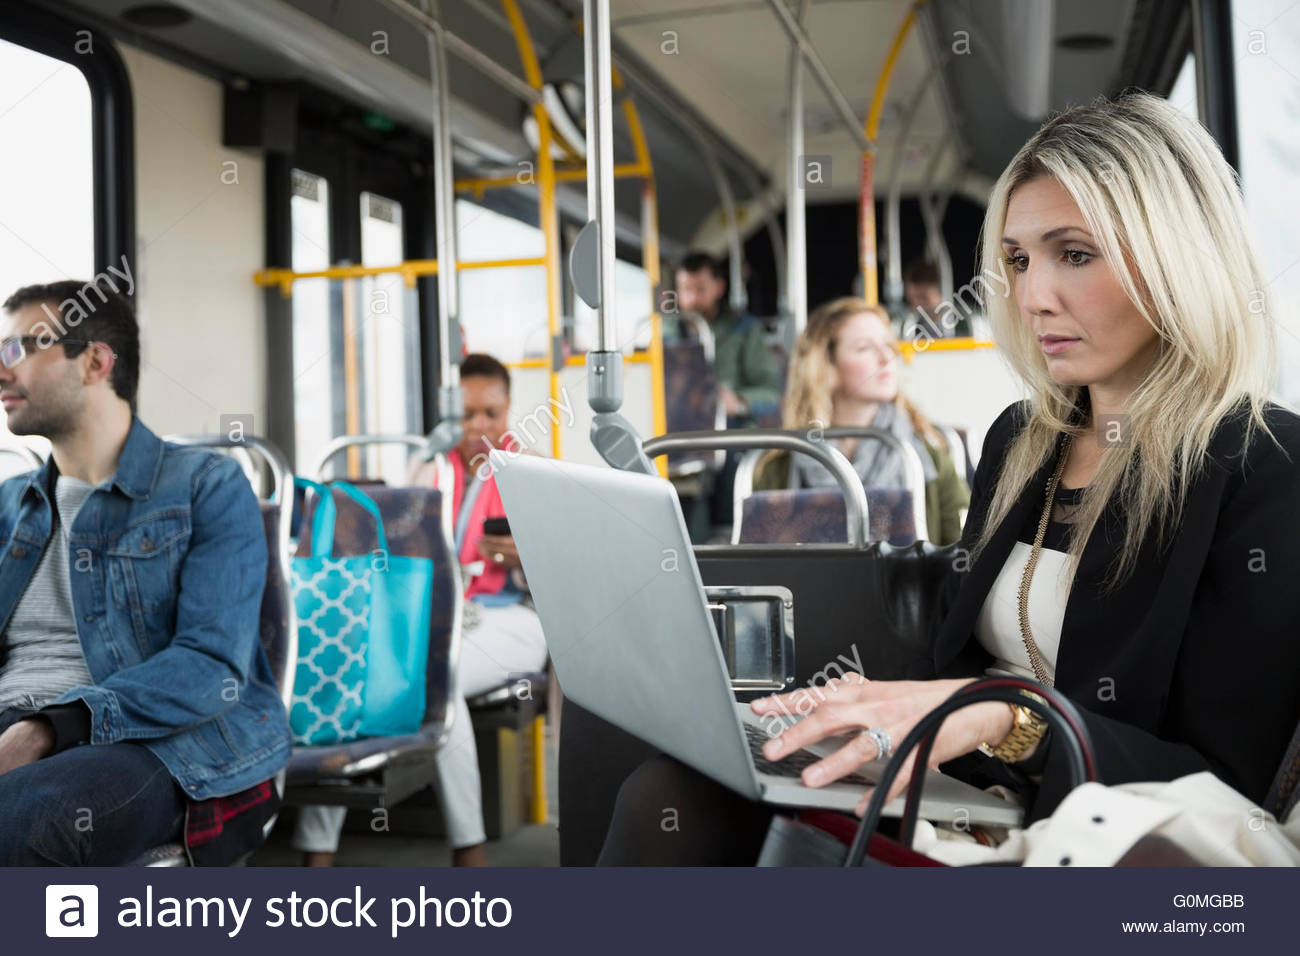 Businesswoman using laptop on bus Photo Stock